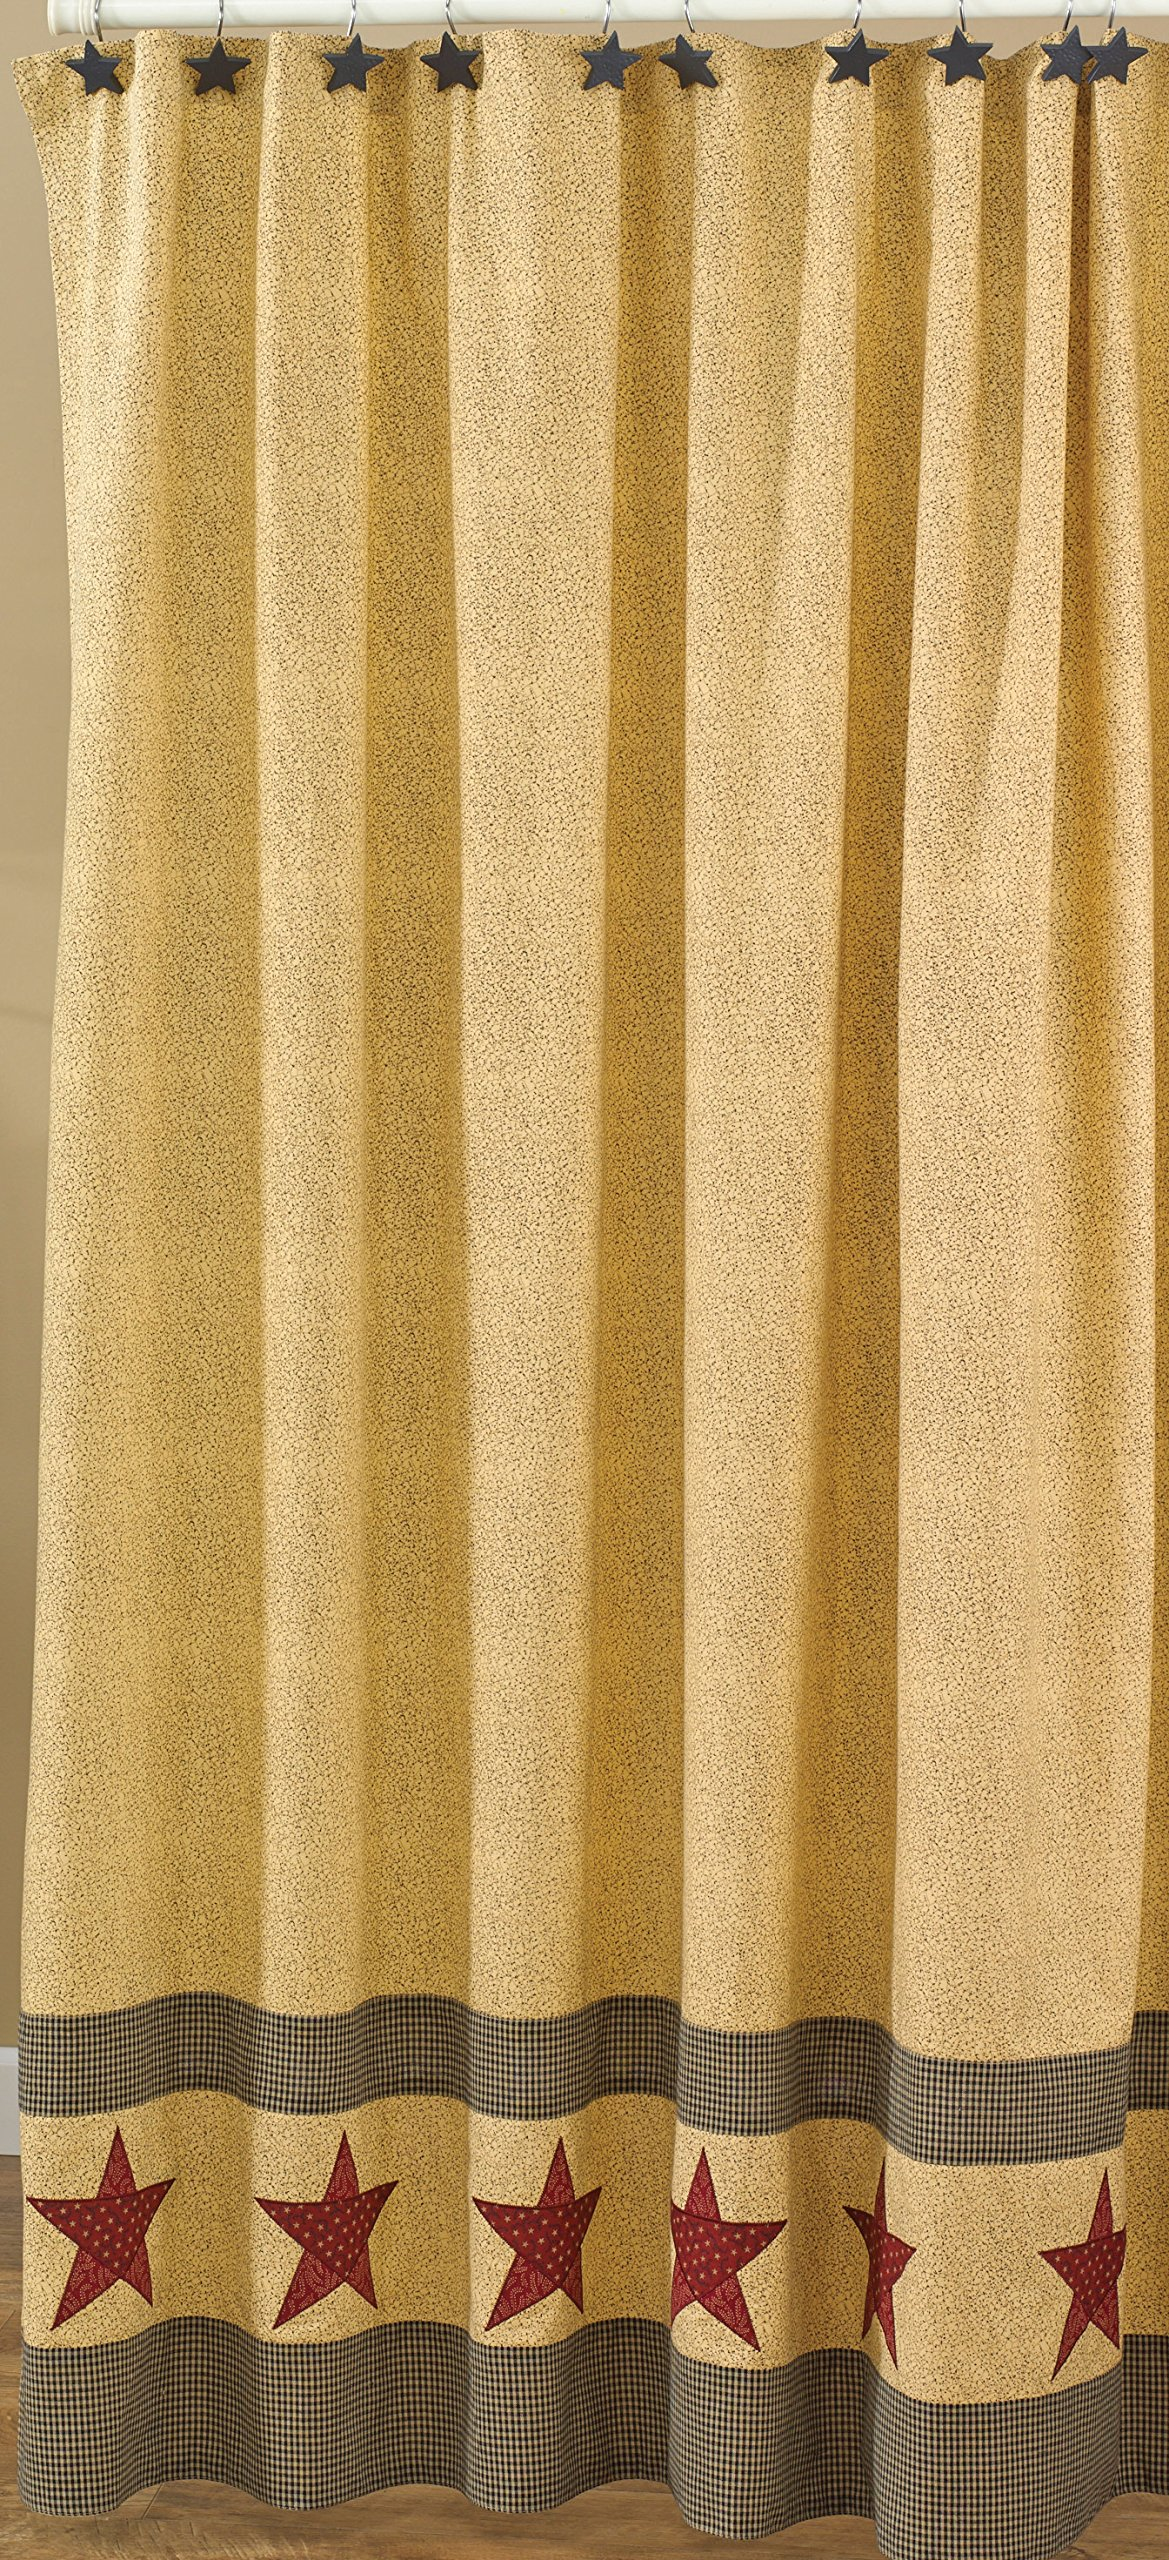 Park Designs Country Star Shower Curtain, 72 by 72''